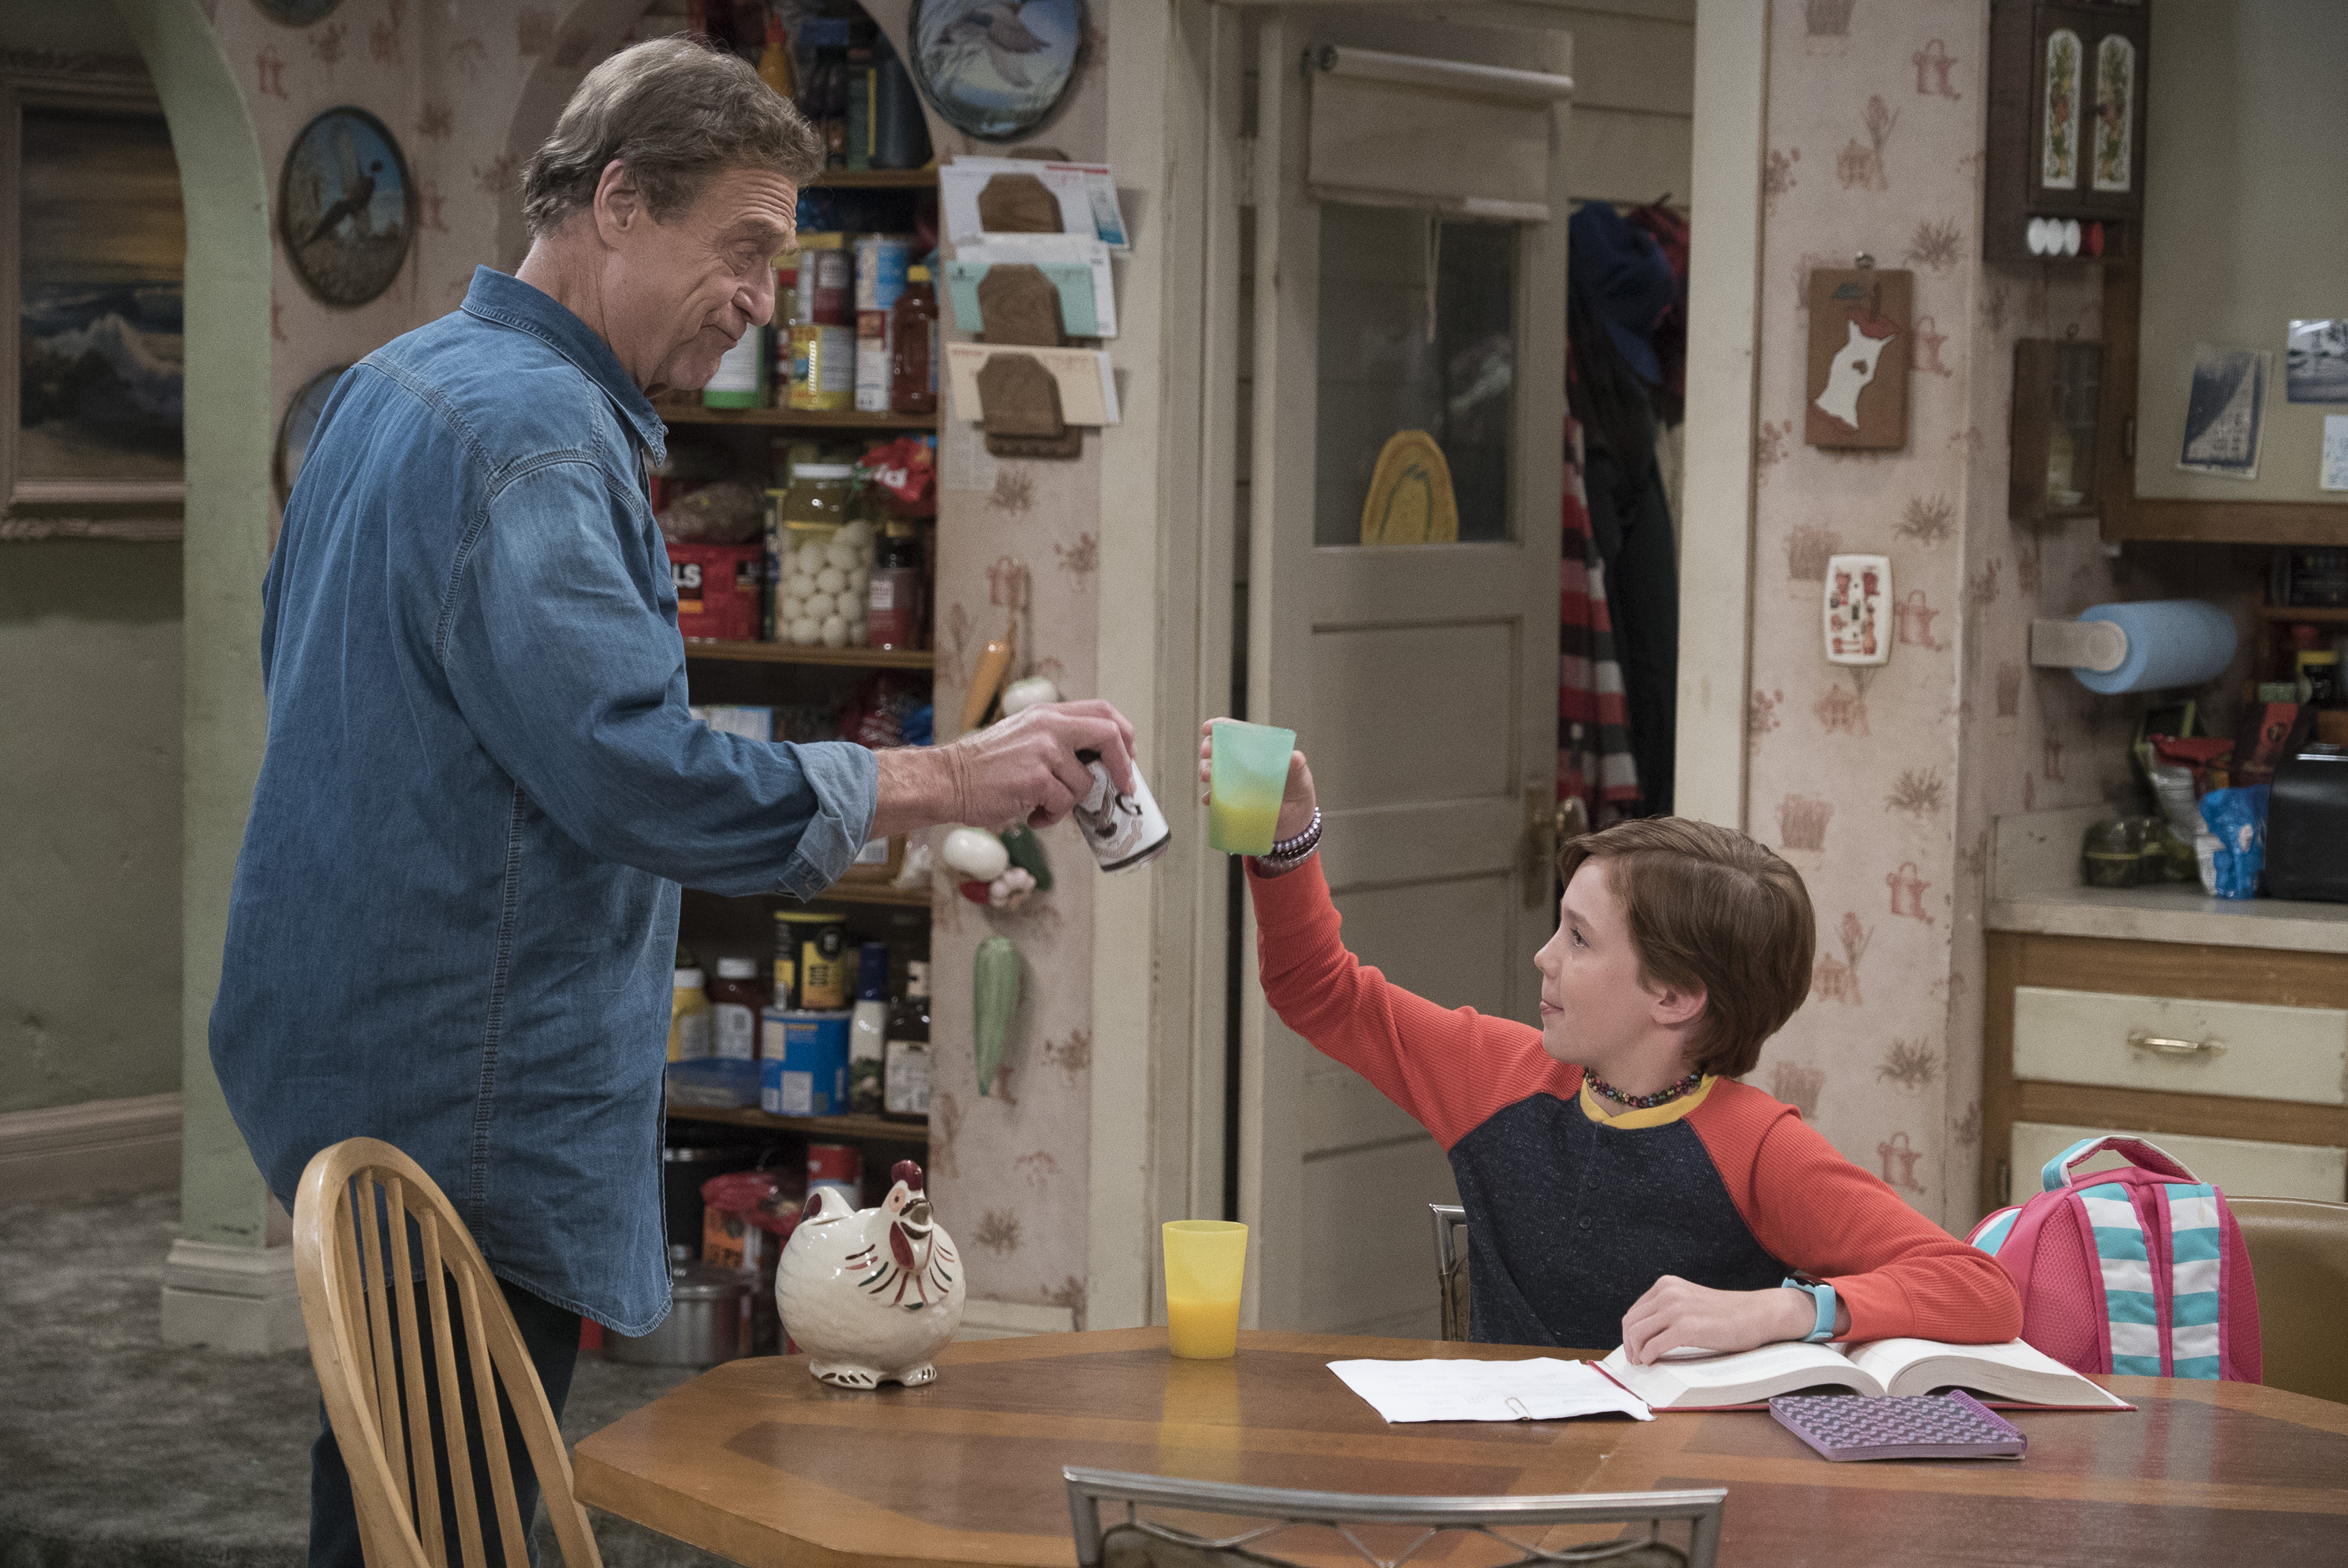 A still from 'The Conners' premiere episode 'Keep on Truckin''. In this photo: John Goodman and Ames McNamara. (Photo Credit: American Broadcasting Companies, Inc)